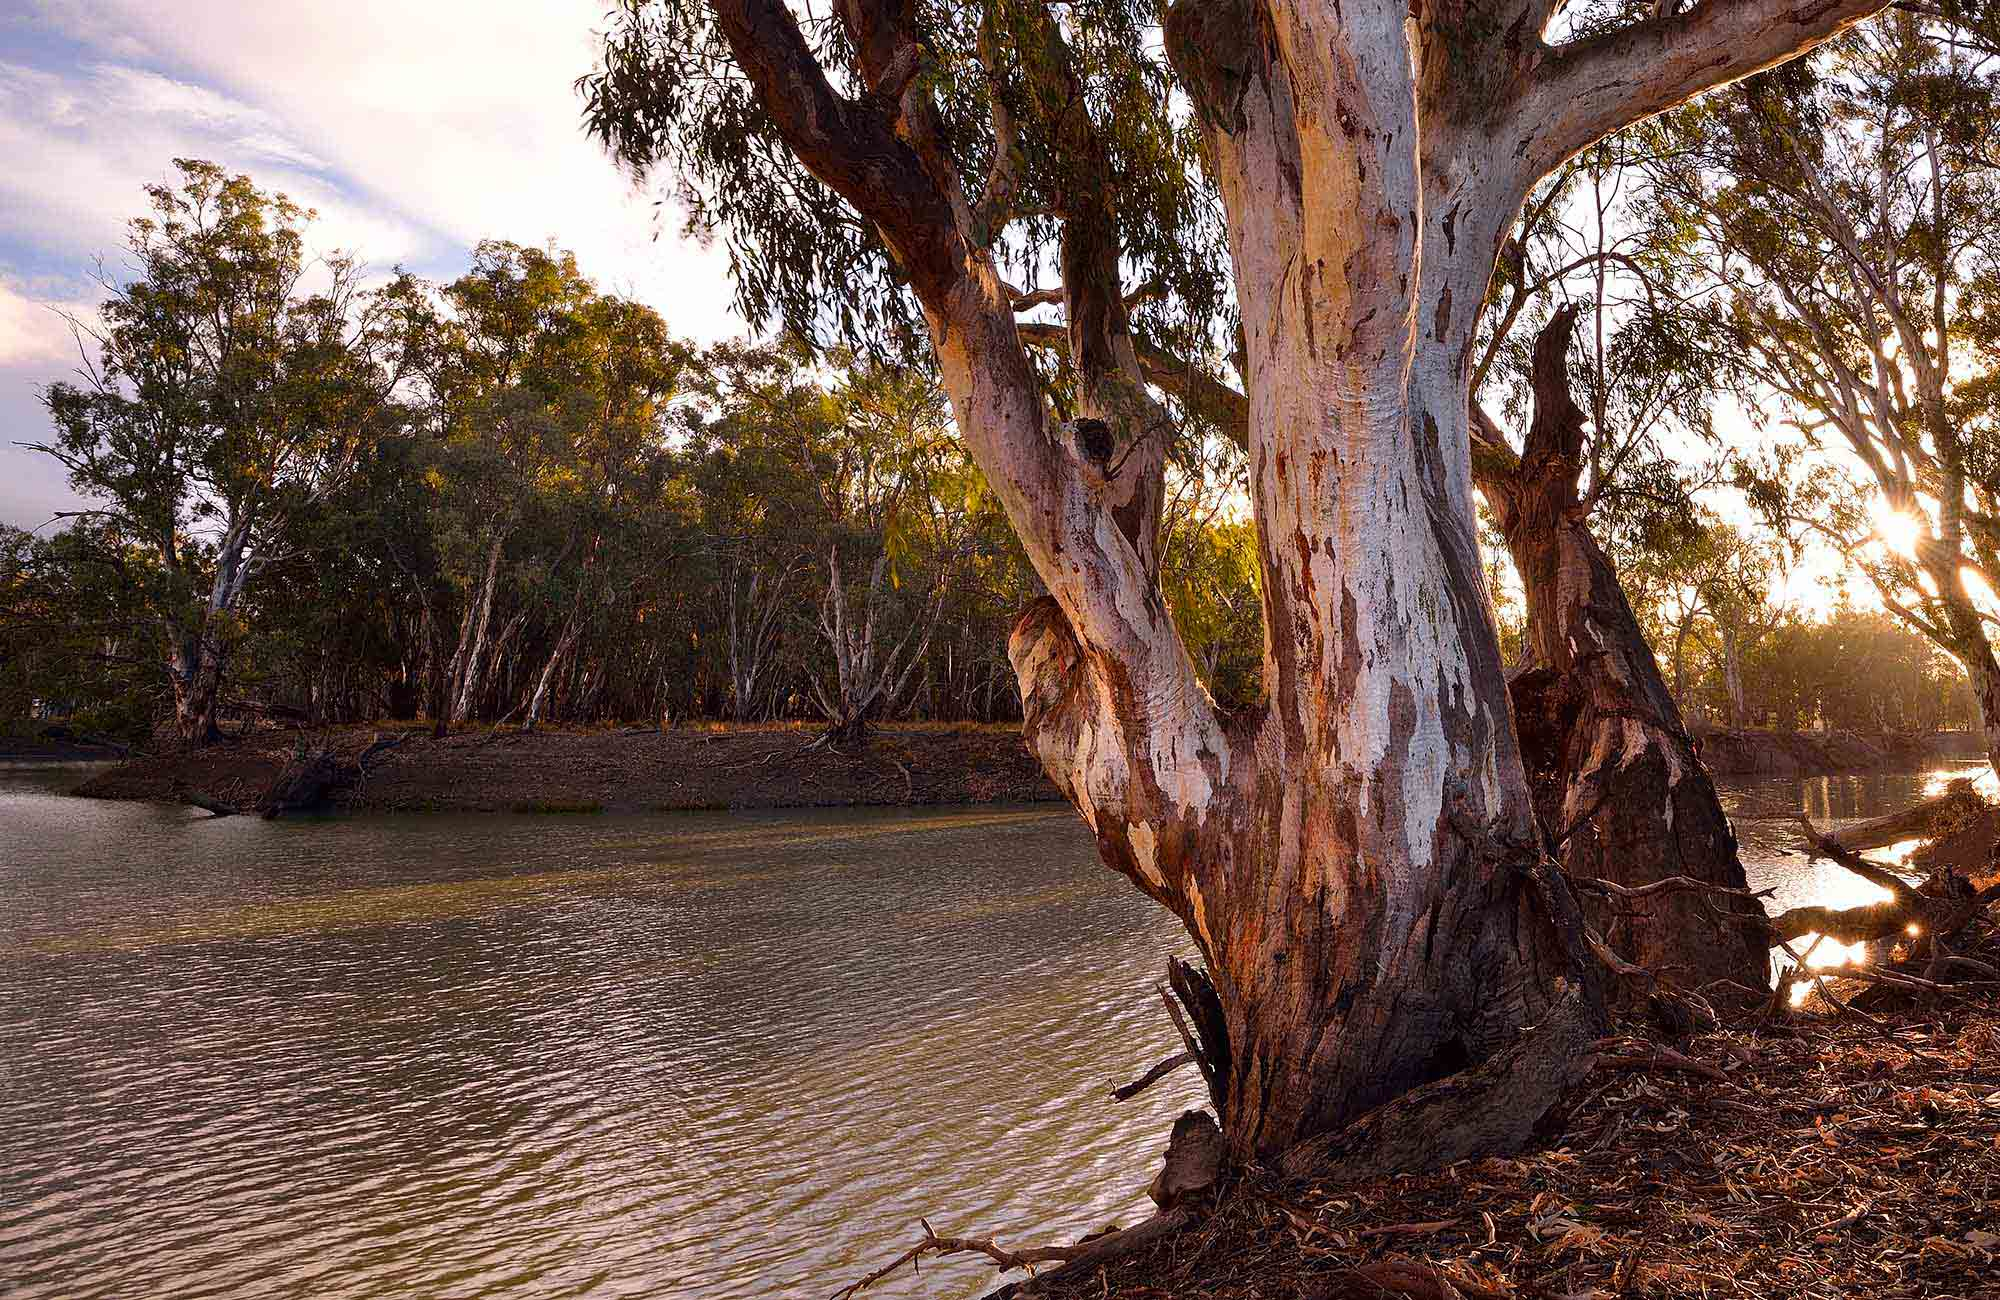 Greens condemn National Party attempts to revive River Red Gum logging industry - Dawn Walker MP